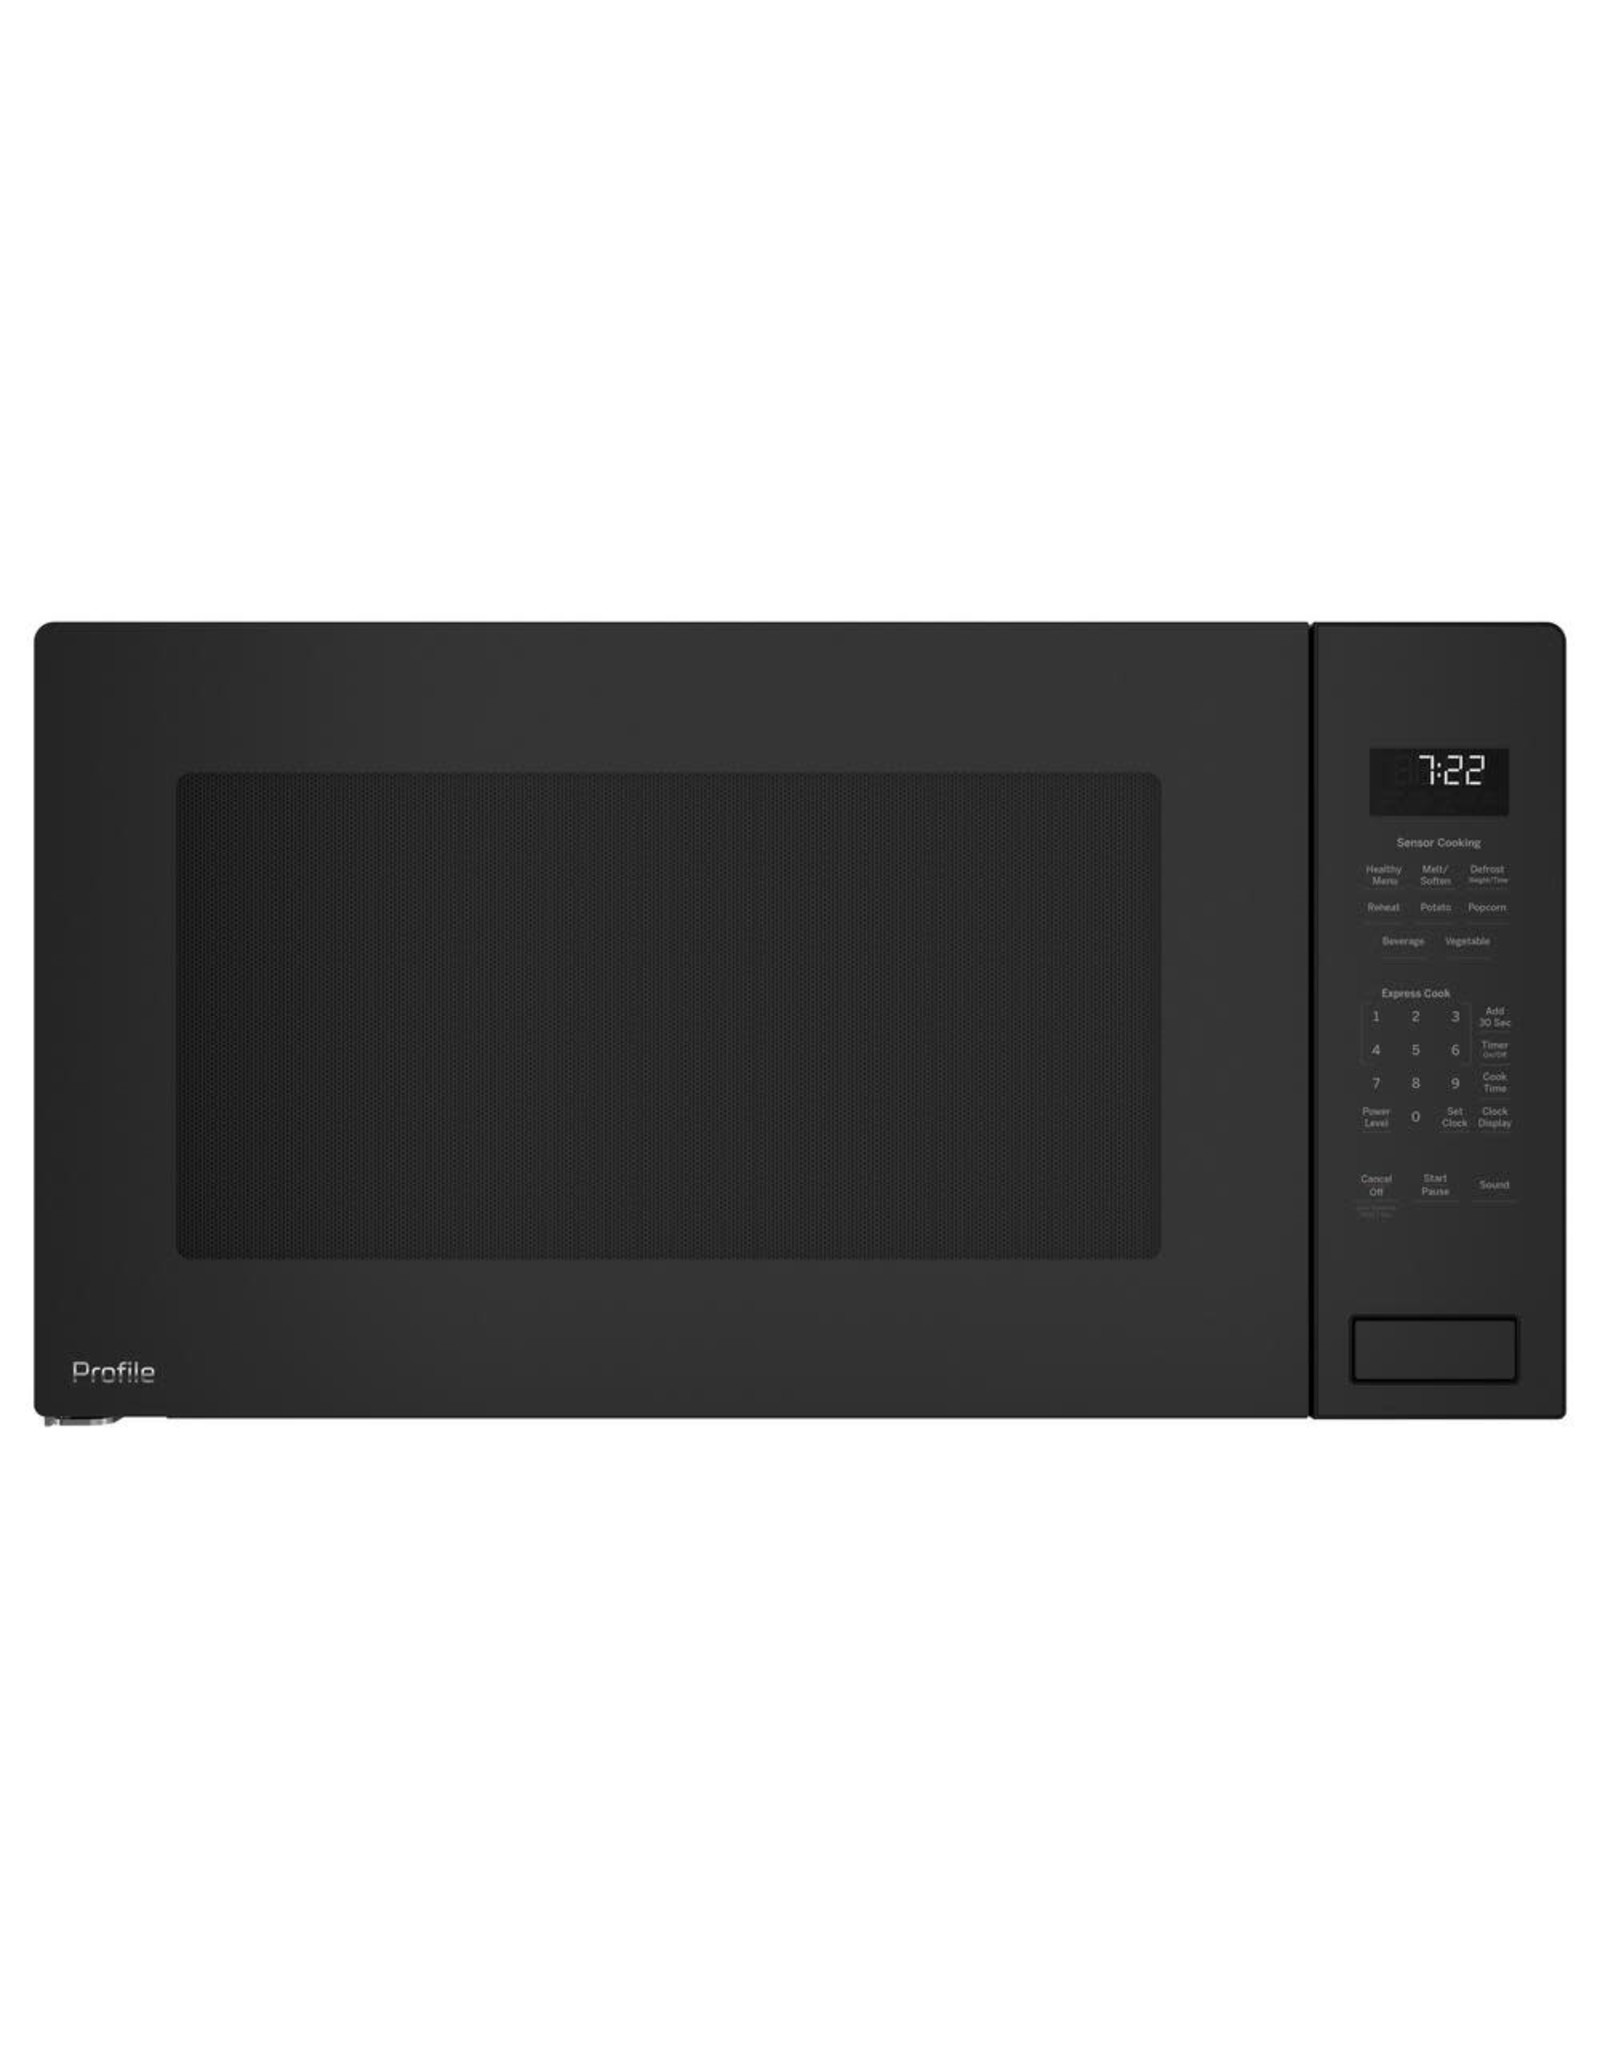 GE PROFILE PEB7227ANDD Profile 2.2 cu. ft. Countertop Microwave in Gray with Sensor Cooking